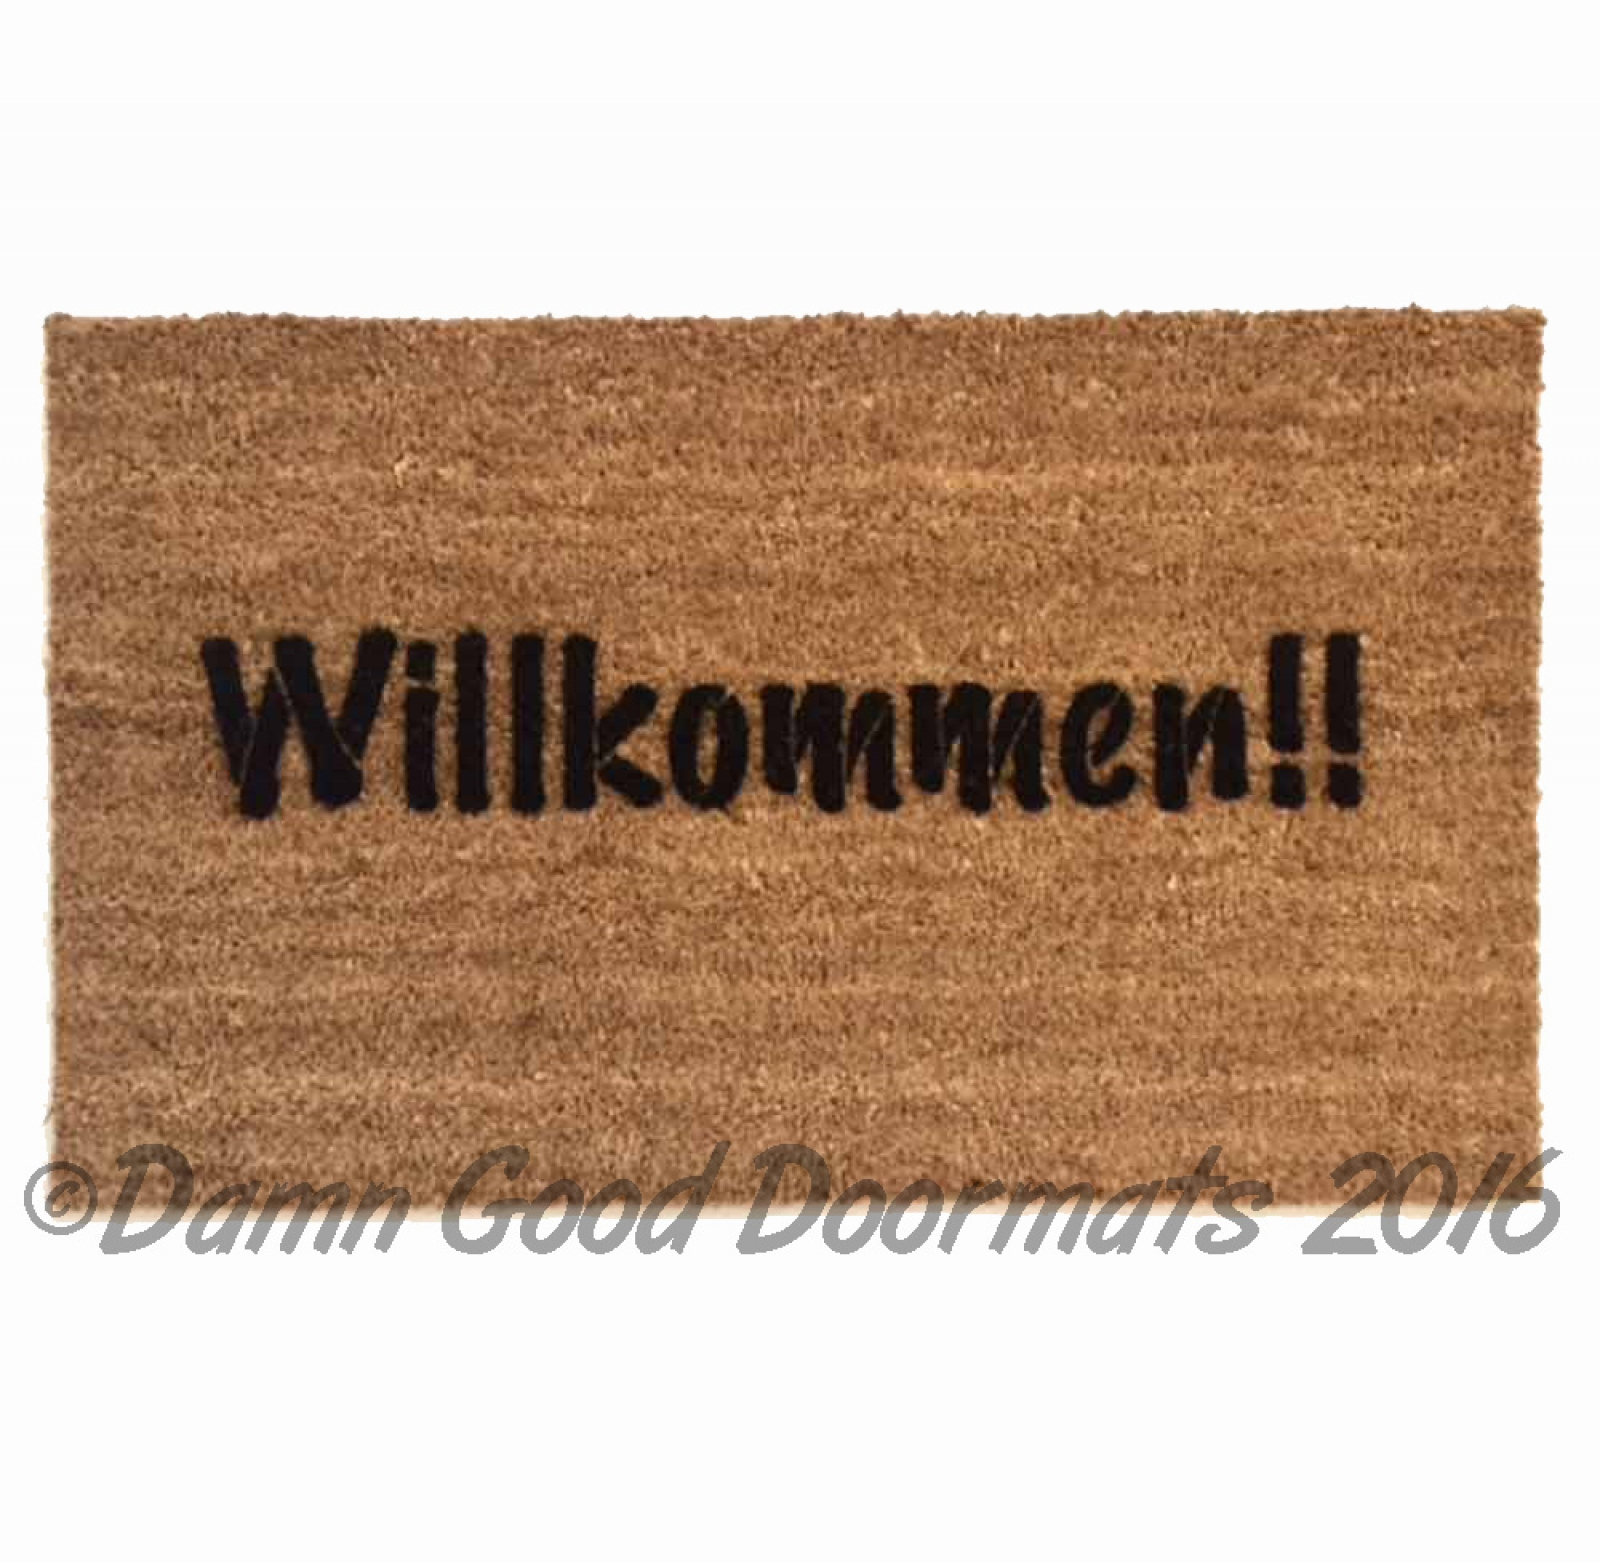 Leave Welcome Mat Willkommen Doormat Quotwelcome In Quot In German Damn Good Doormats